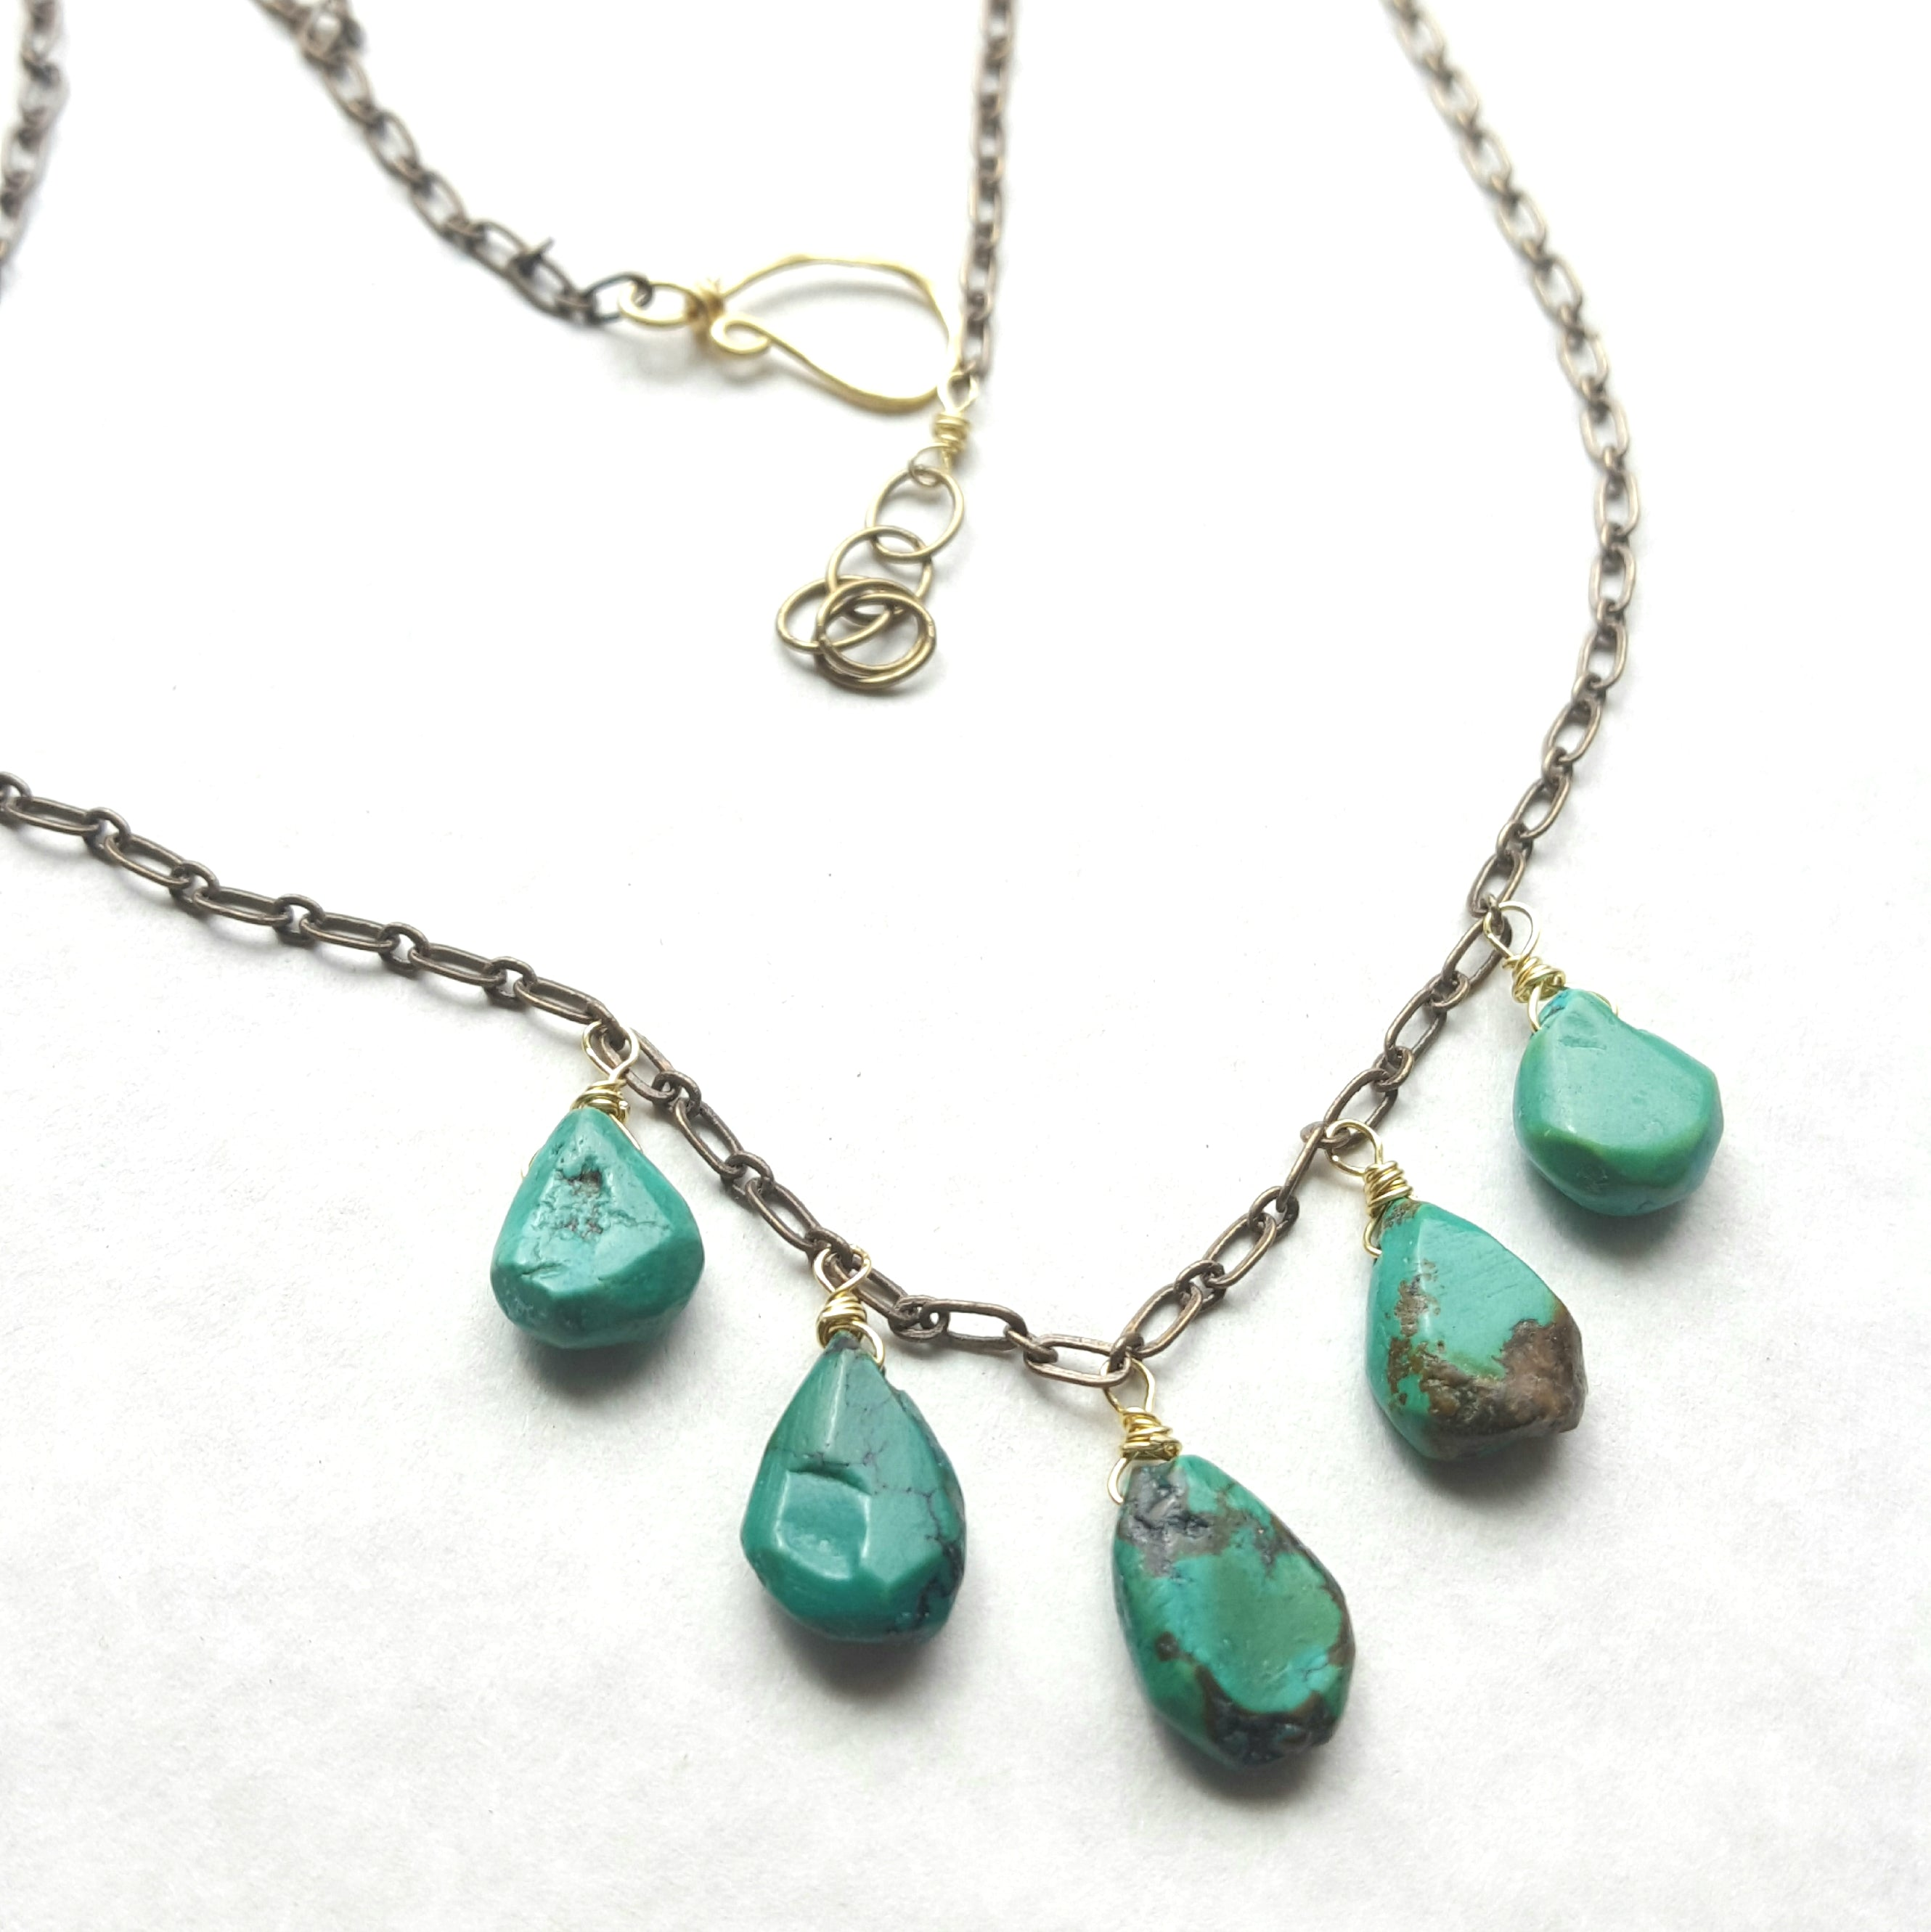 palace turquoise holst lee statement necklace sale shop holstlee jewellery necklaces